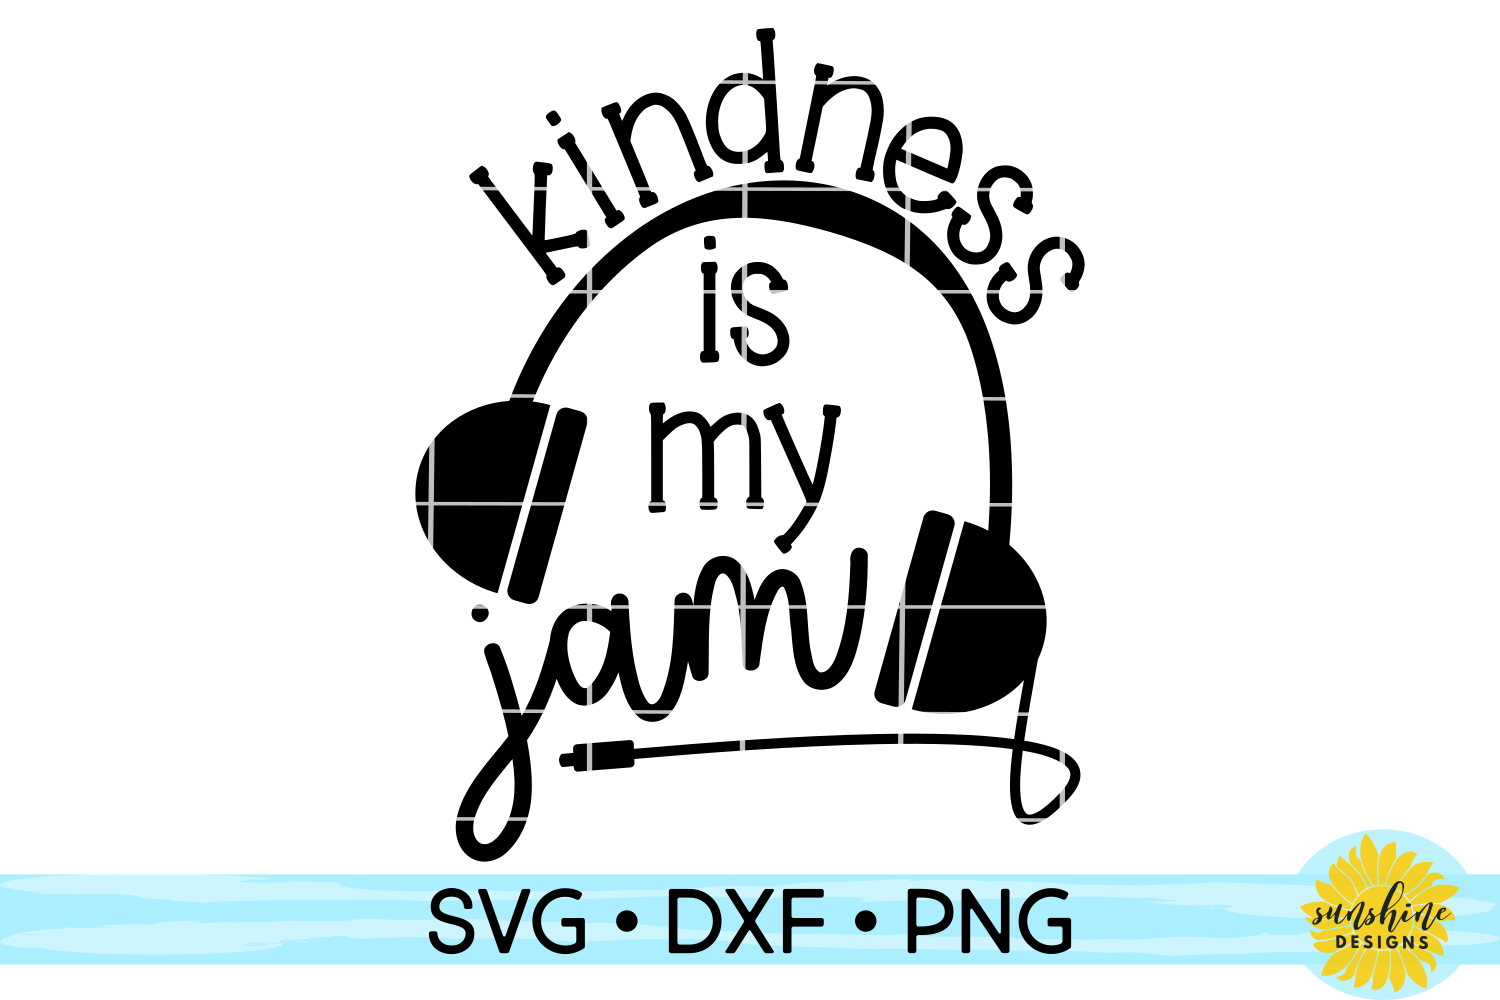 KINDNESS BUNDLE | ANTI-BULLYING | 15 DESIGNS | SVG DXF PNG example image 2